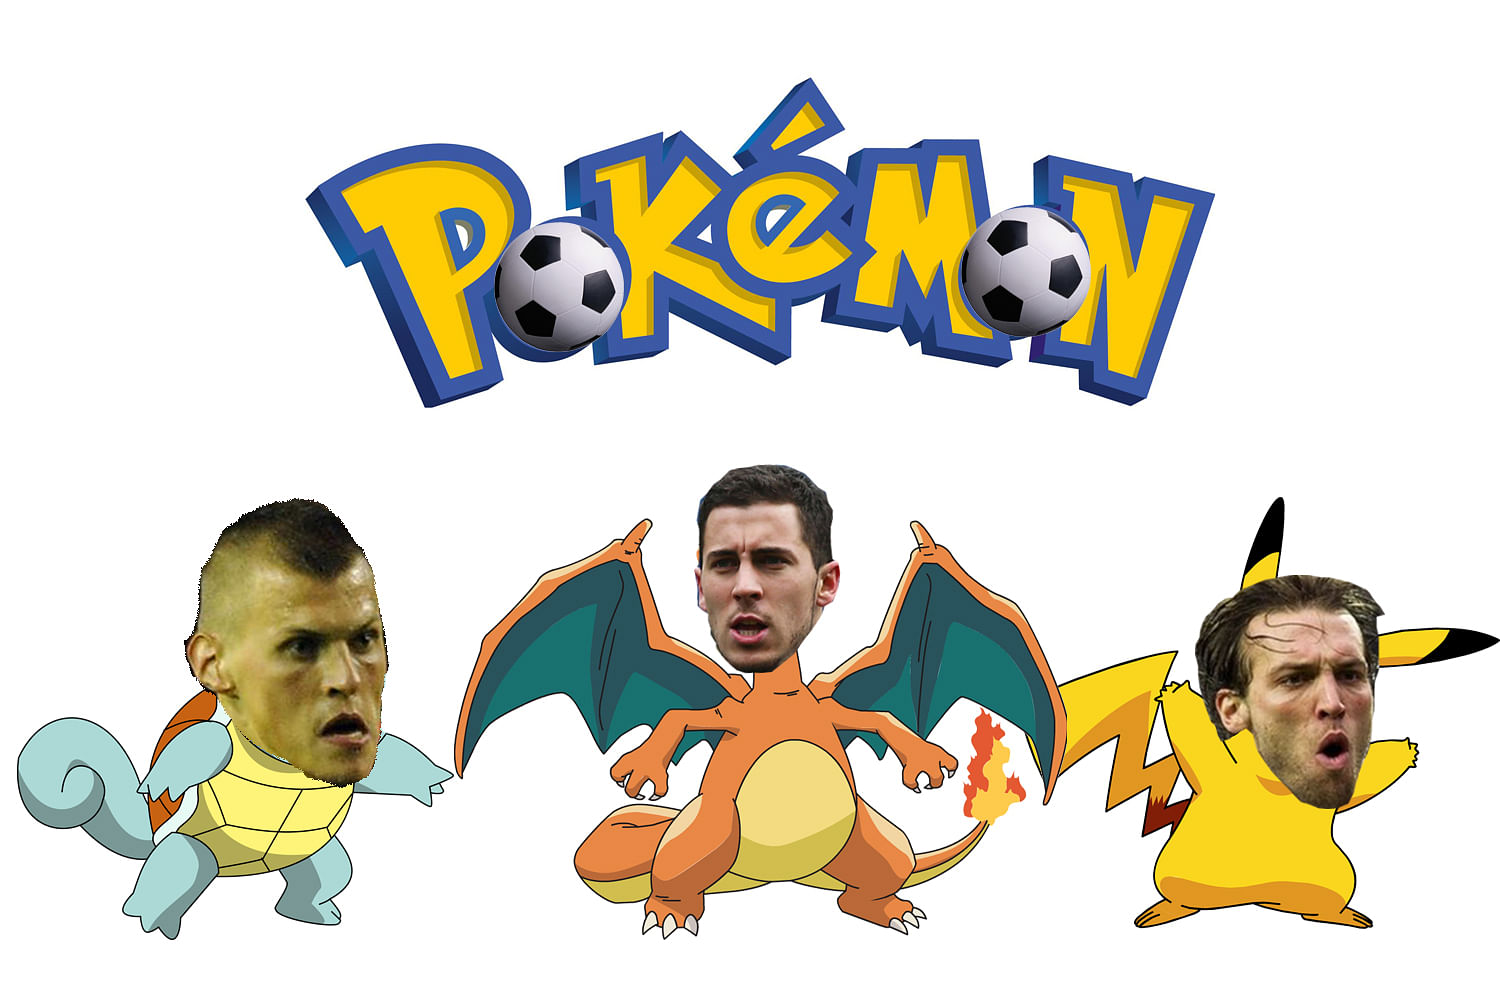 Humour: Crossover game between Pokémon and football to be released soon